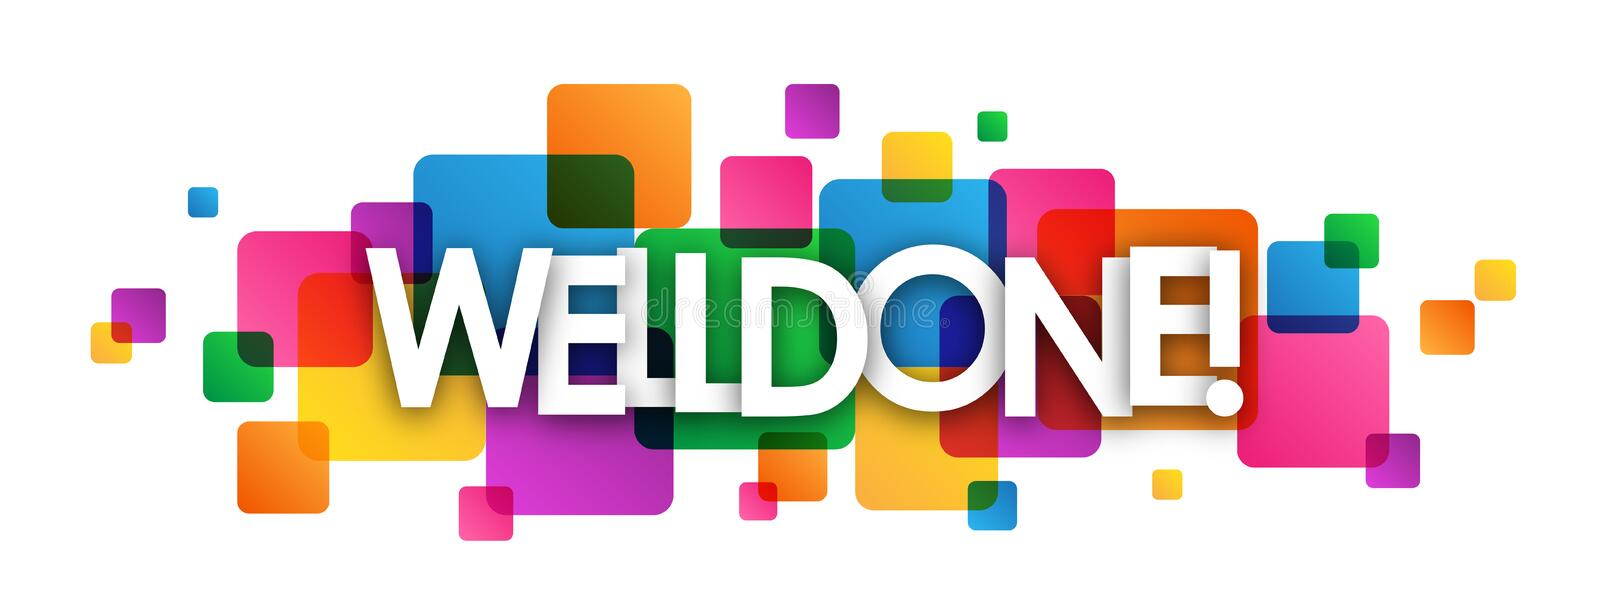 WELL DONE! colorful overlapping squares banner stock illustration